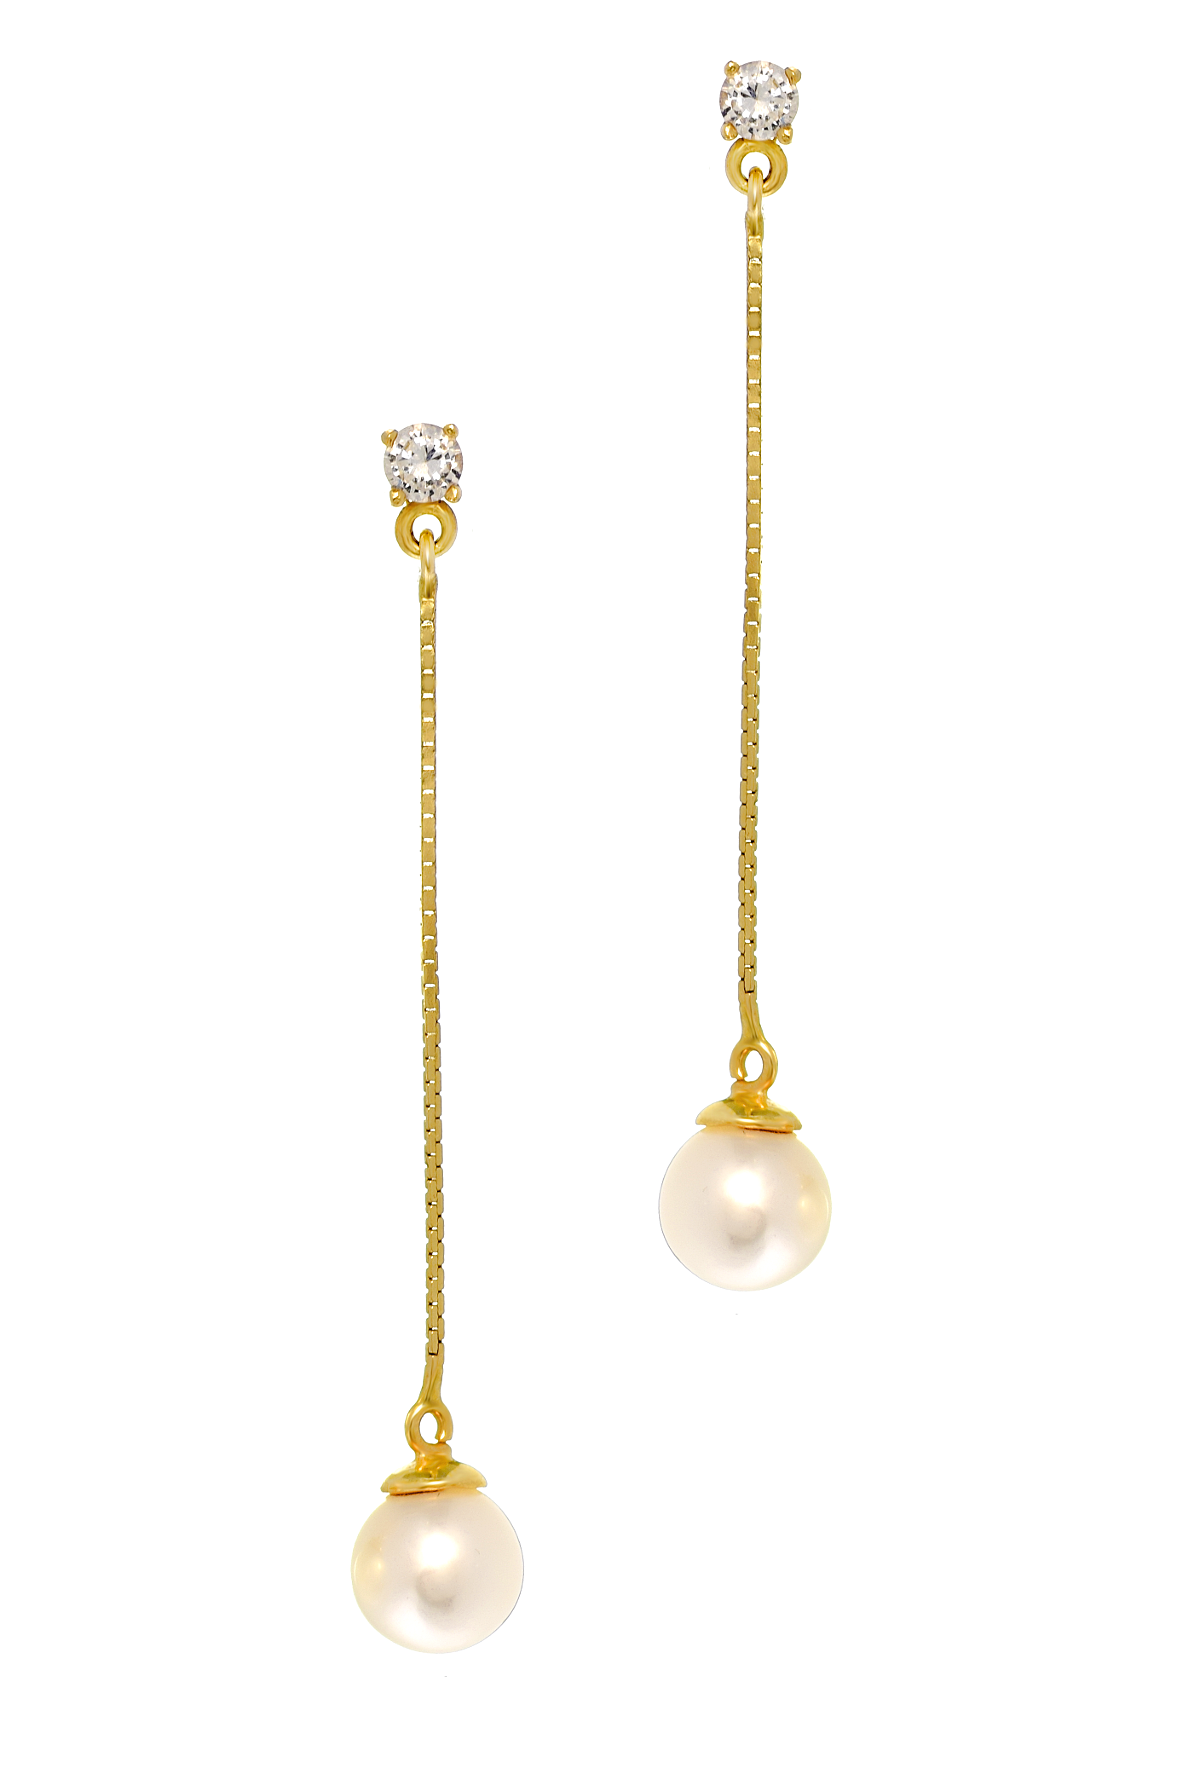 Buy 14k Yellow Gold Pearl Drop Earrings With Cz Stone At Anny